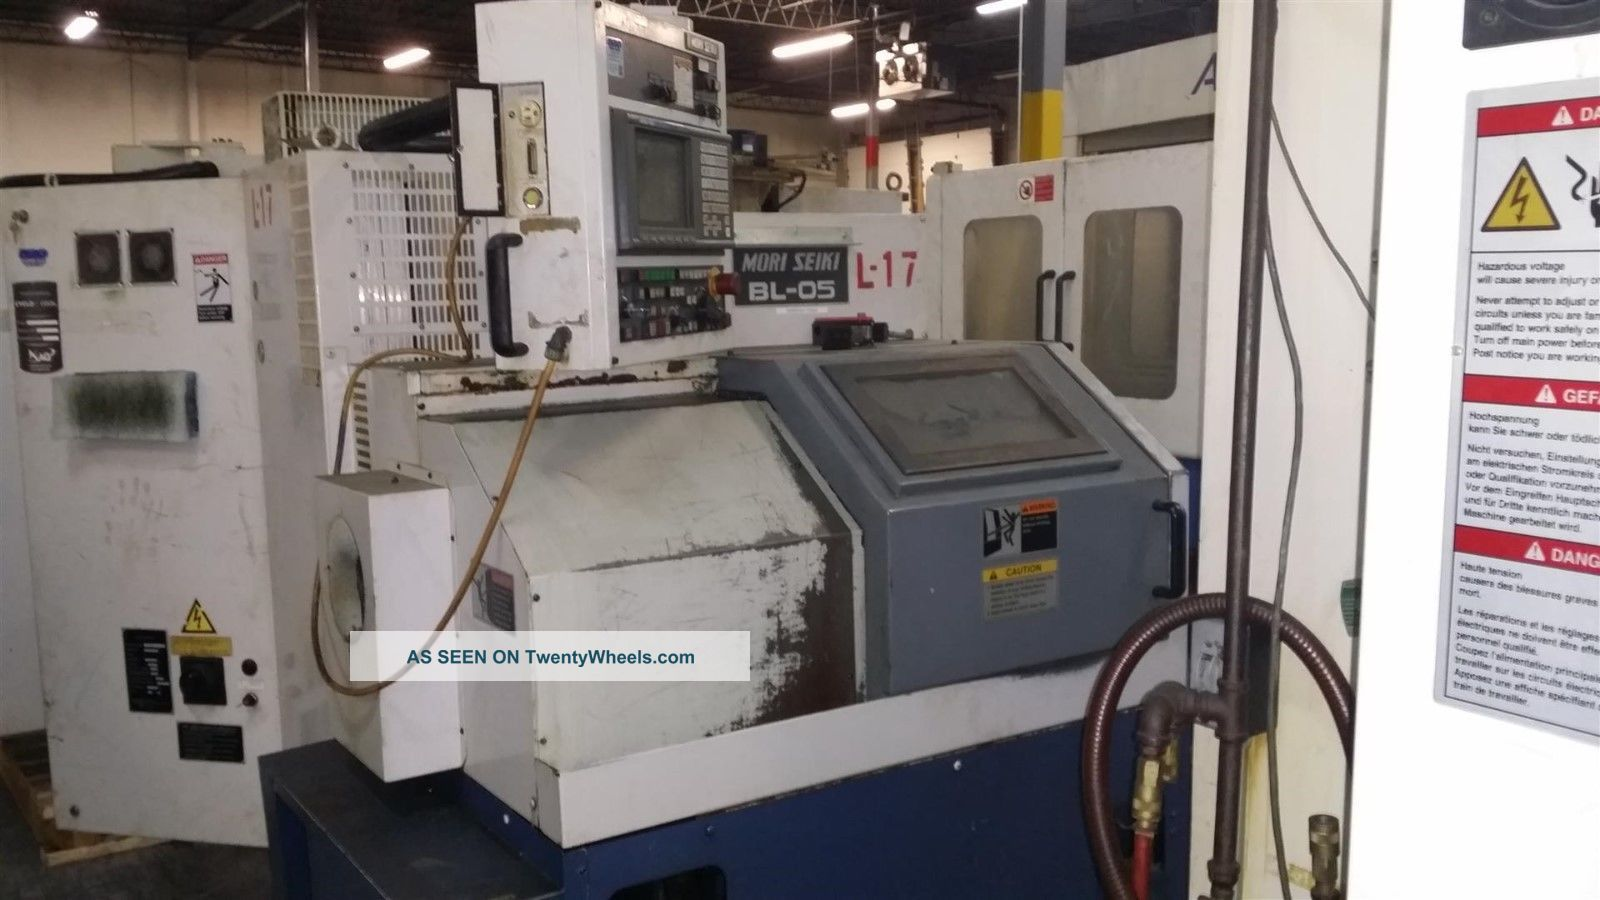 Mori Seiki Bl - 05 Cnc Gang Tool Turning Center Msc - 521 Chip Conveyor 1997 Metalworking Lathes photo